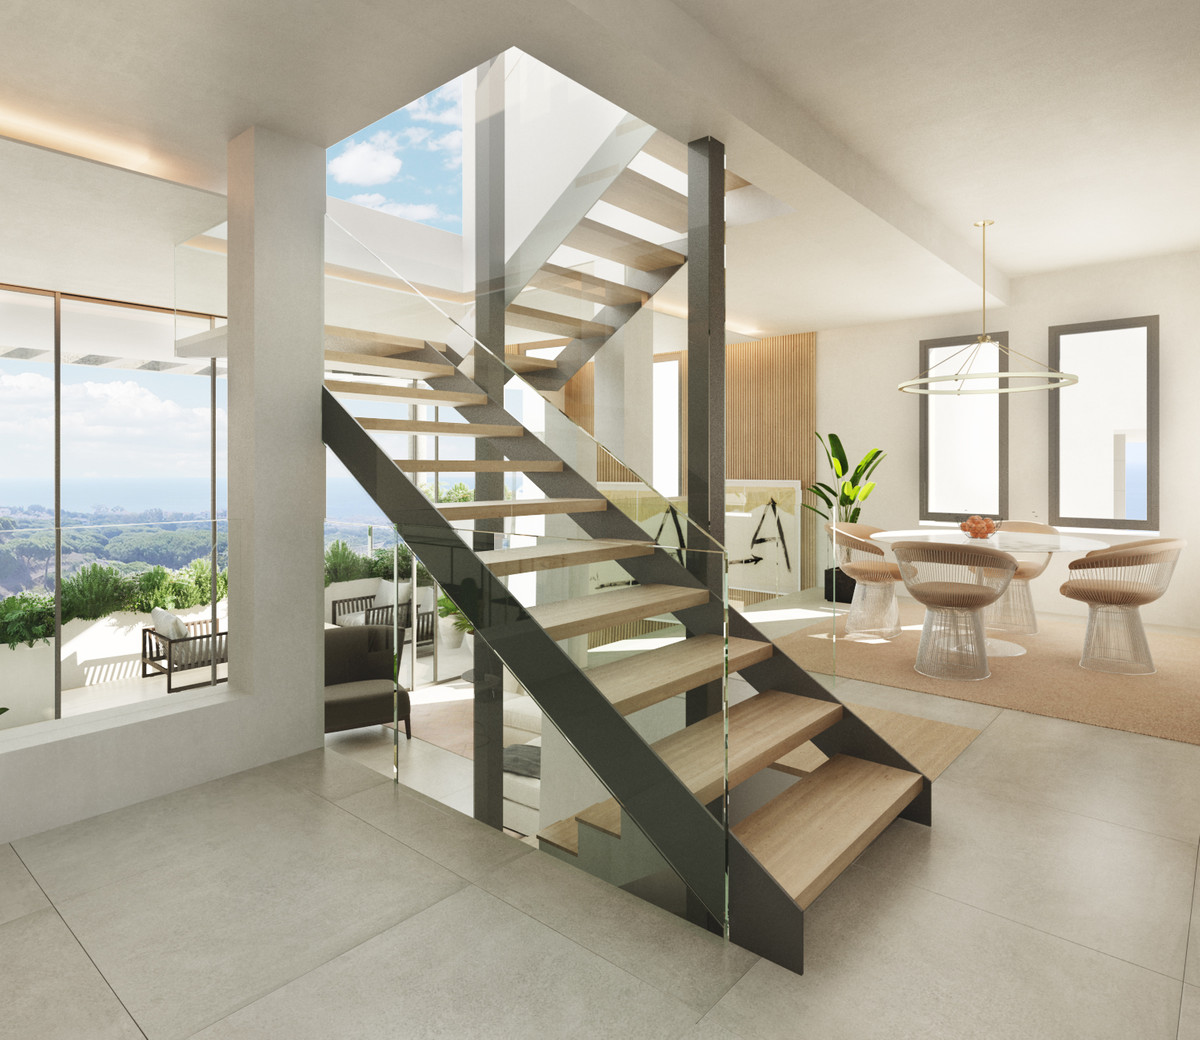 The living room is designed to ensure wellbeing and offers ease and elegance with a clear ceiling he,Spain